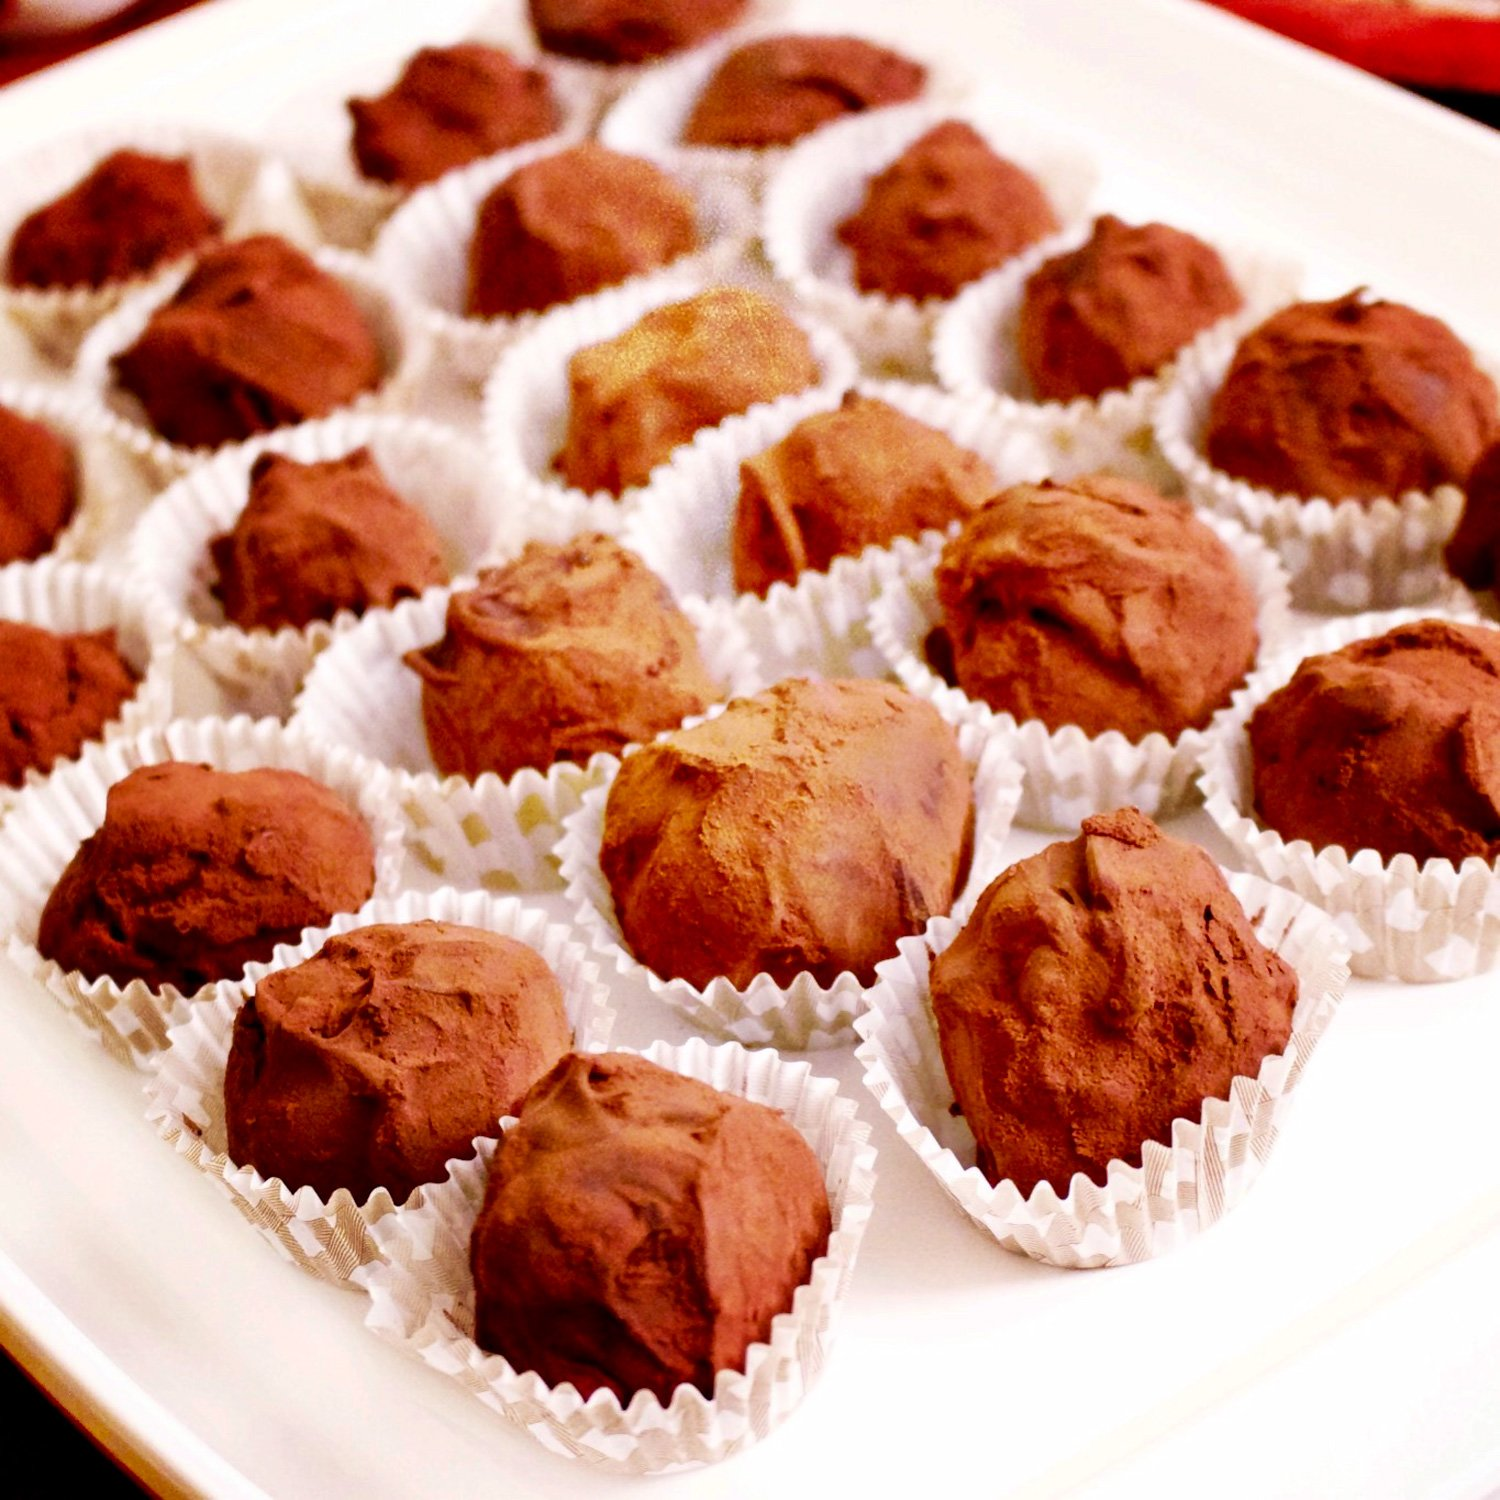 Easy Delicious Chocolate Truffles are an awesome dessert to make that is perfect for holidays and Valentine's Day. The truffles are great for the holidays.